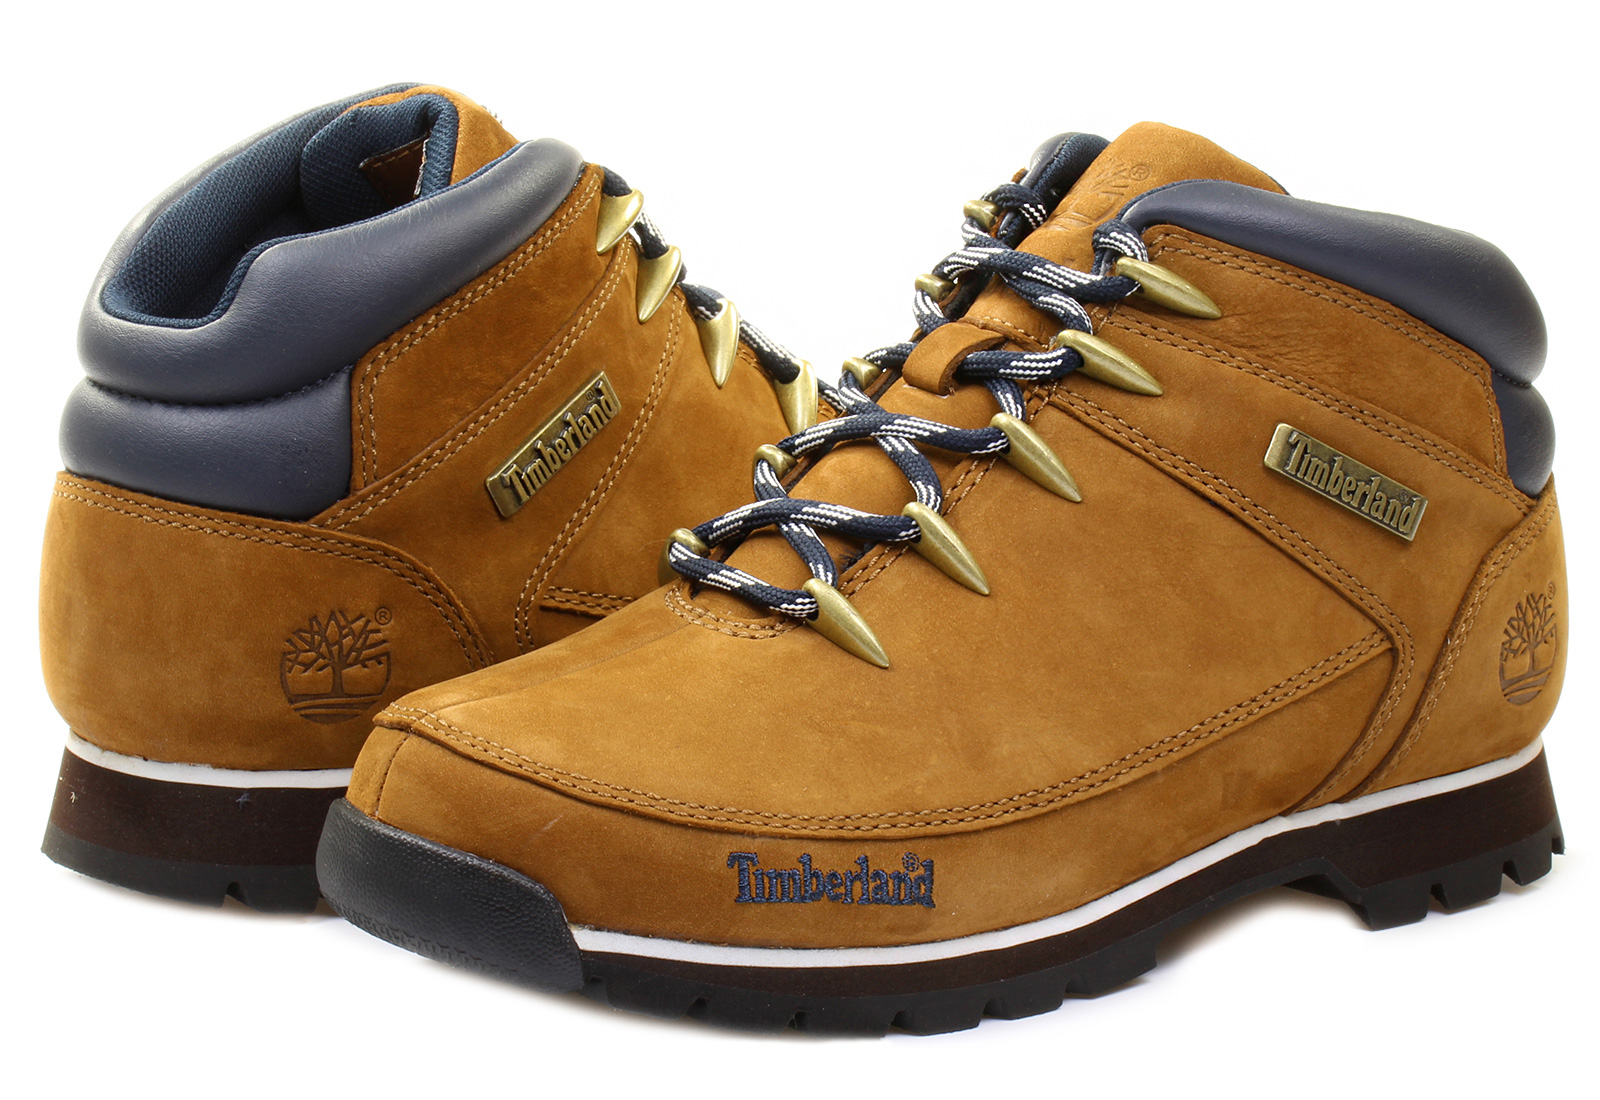 2c42937aff2 Timberland Boots - euro sprint - 6612r-brn - Online shop for sneakers,  shoes and boots